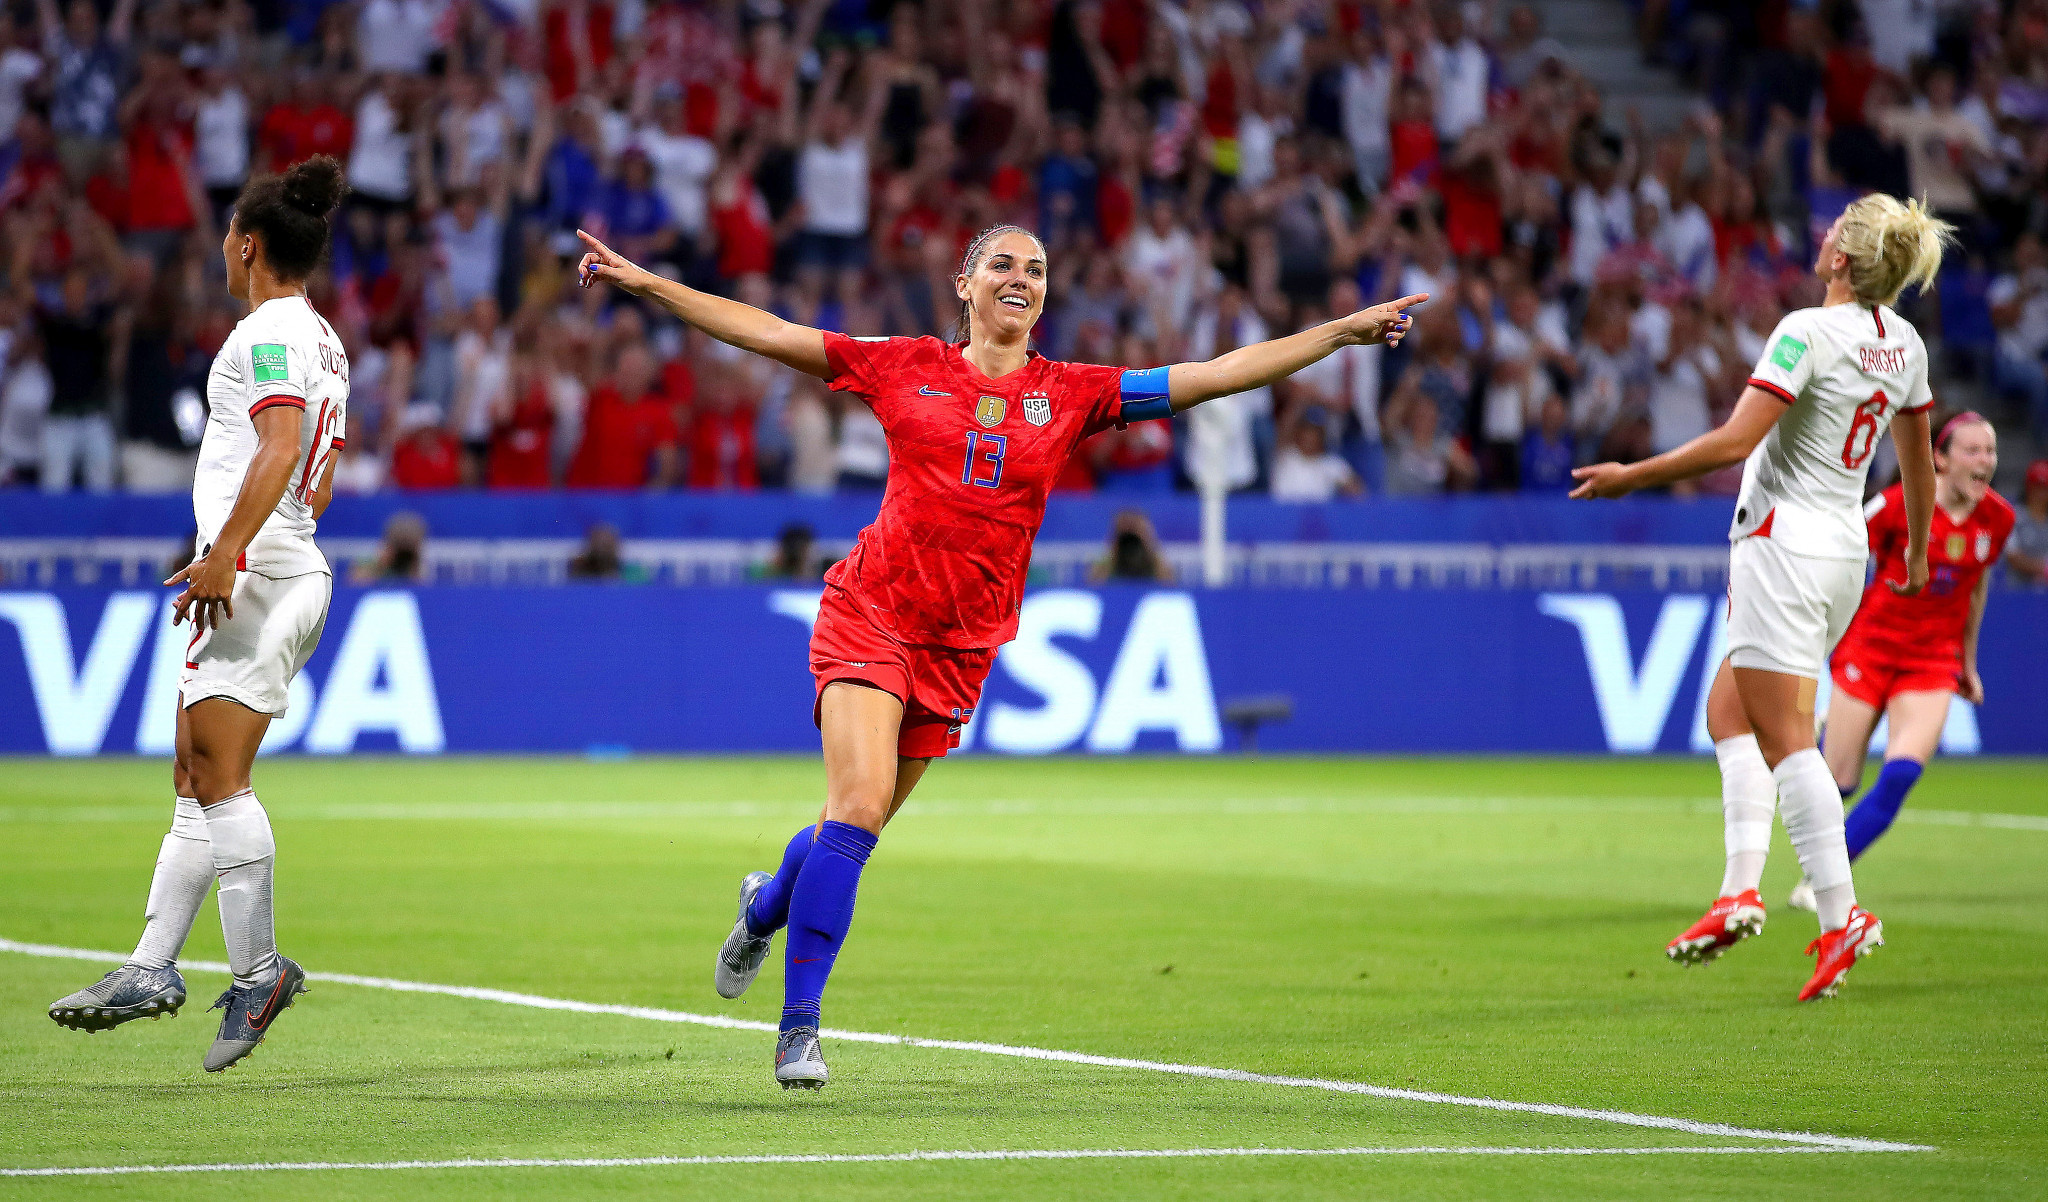 United States reach FIFA Women's World Cup final with dramatic win over England